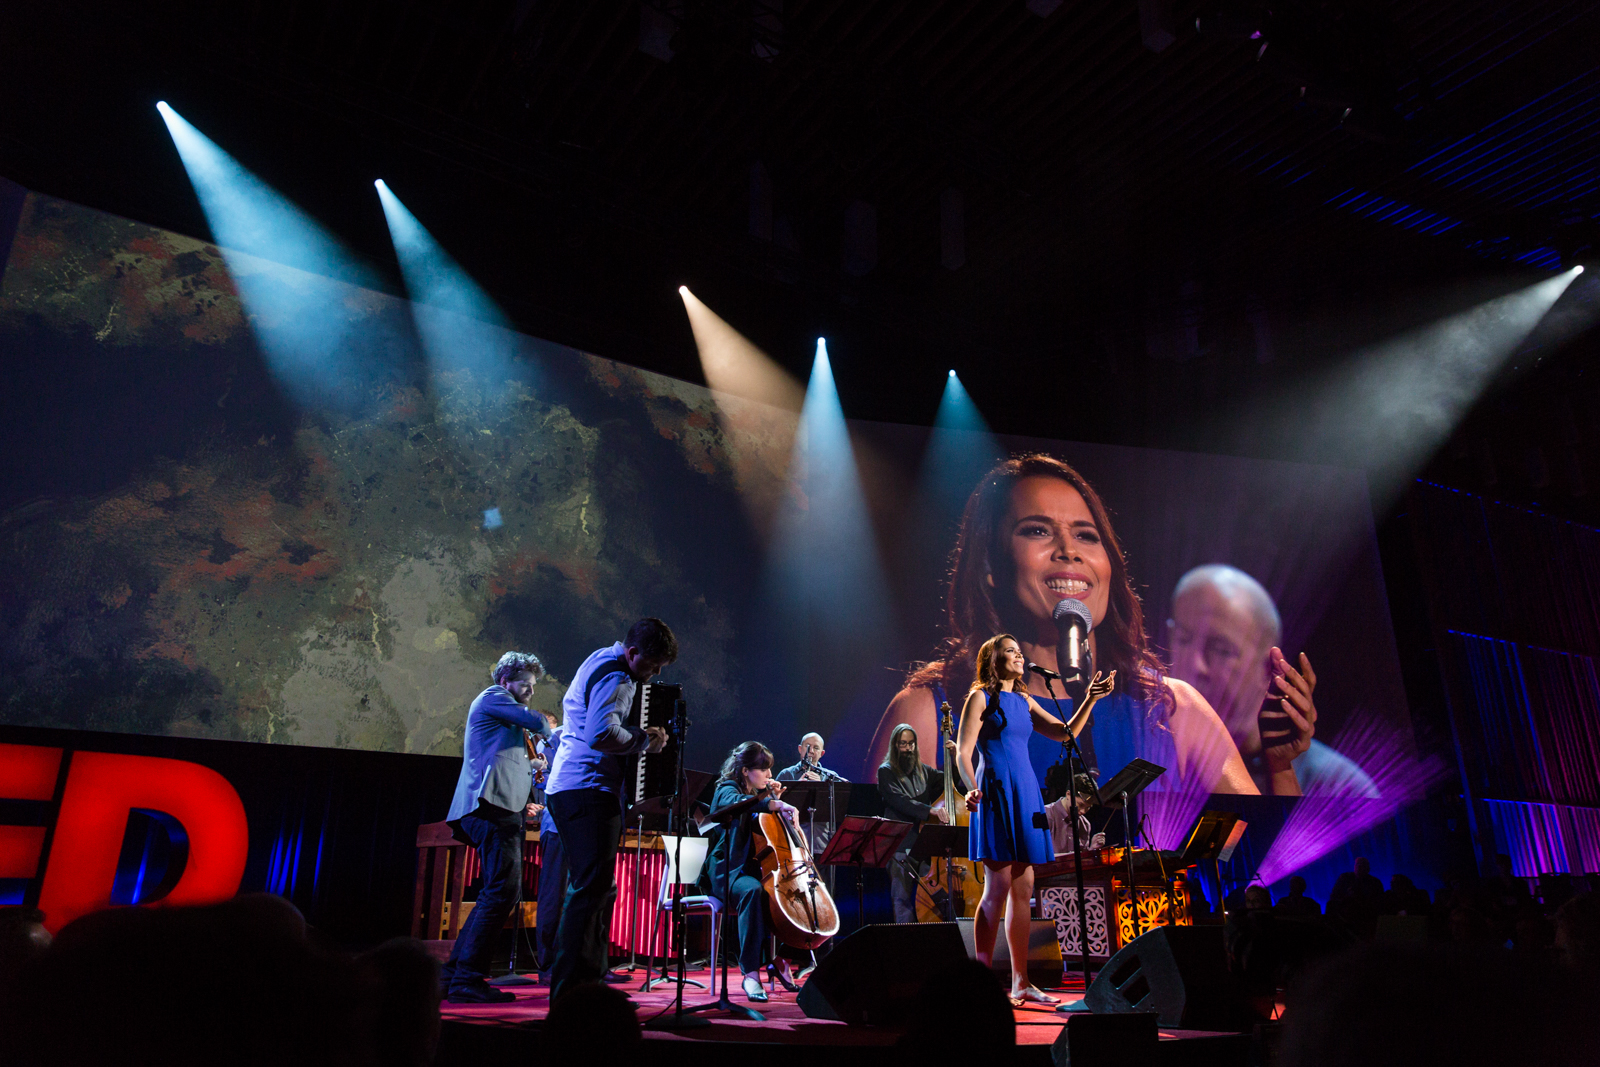 Rhiannon Giddens and Silk Road Ensemble perform at TED2016 - Dream, February 15-19, 2016, Vancouver Convention Center, Vancouver, Canada. Photo: Bret Hartman / TED